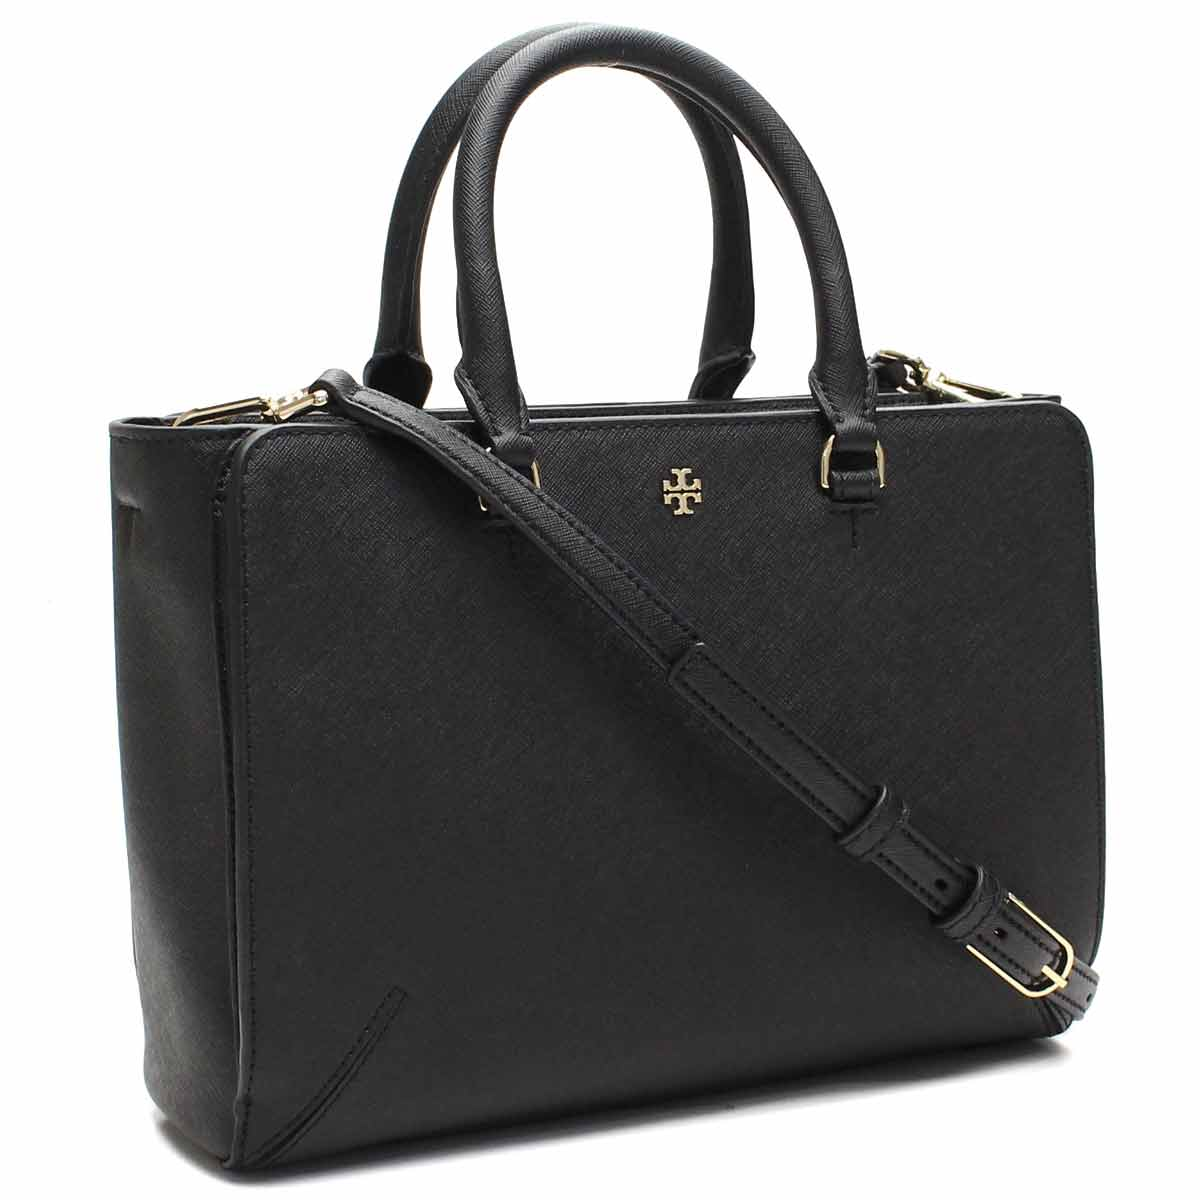 Hit The Total Brand Whole Tory Burch Robinson Tote Bag 11169775 001 Black Taxfree Send By Ems Authentic A New Item